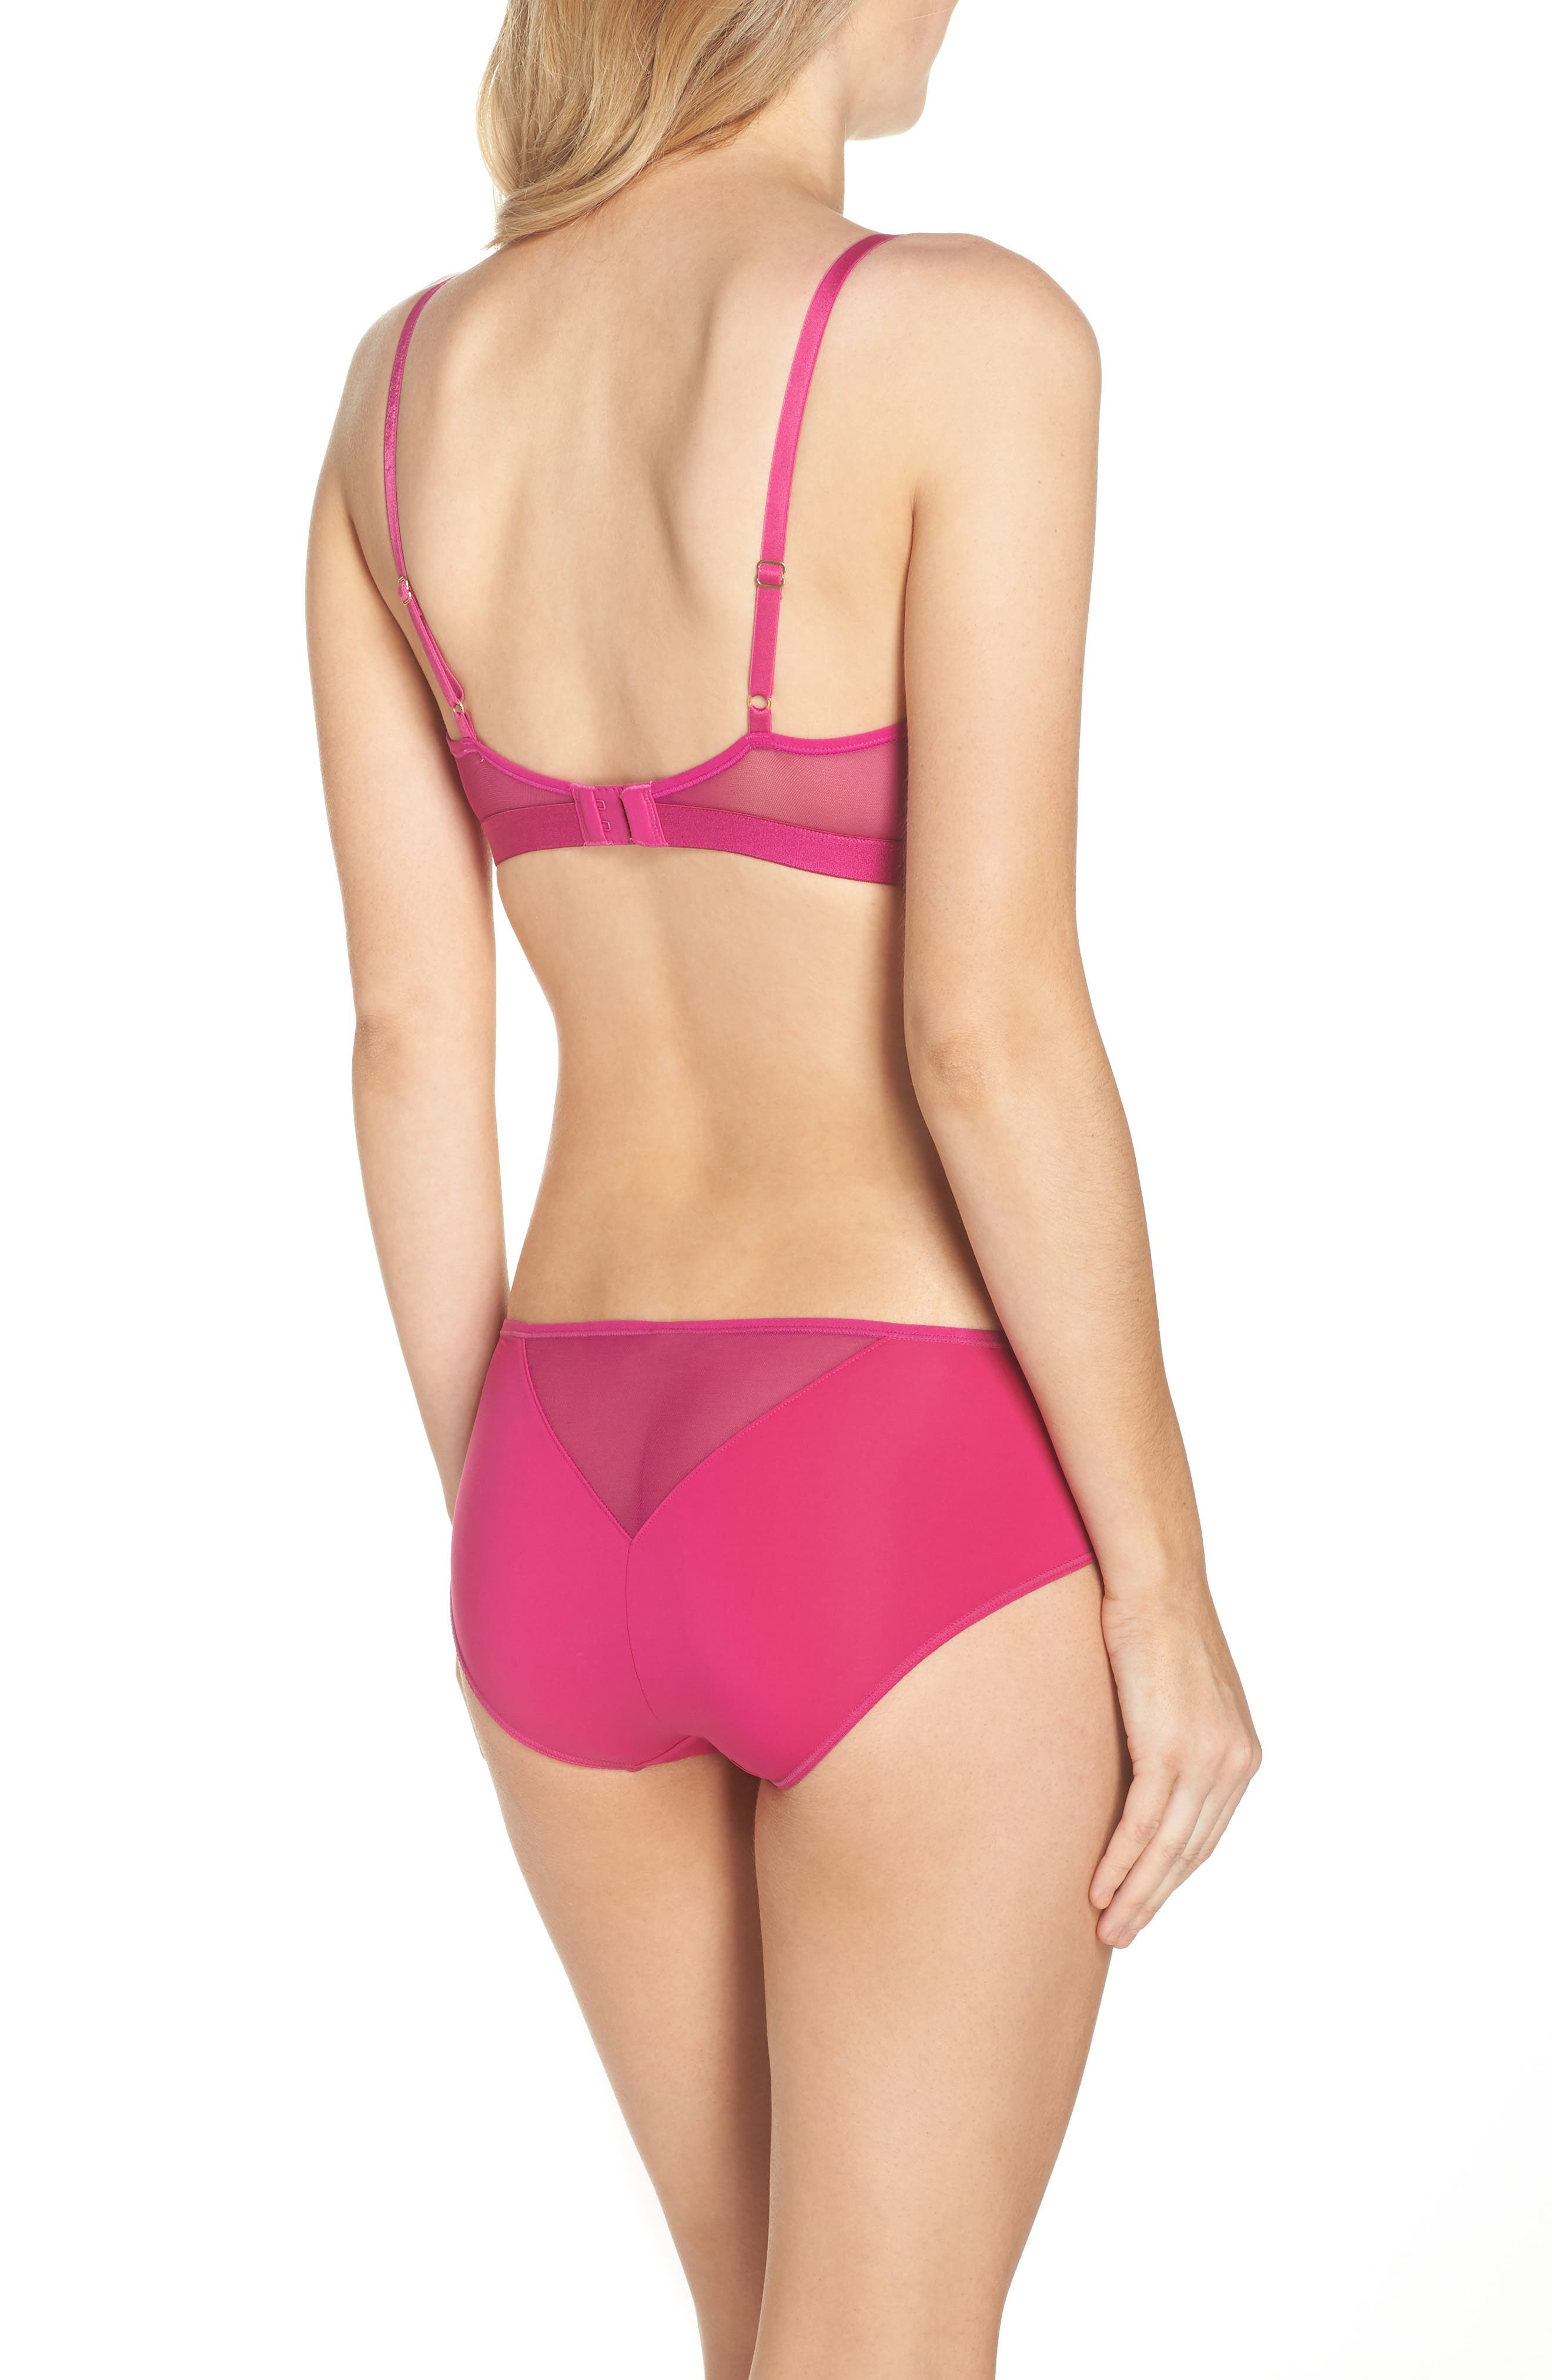 Highlight Wireless Bra,                             Alternate thumbnail 5, color,                             Wild Orchid